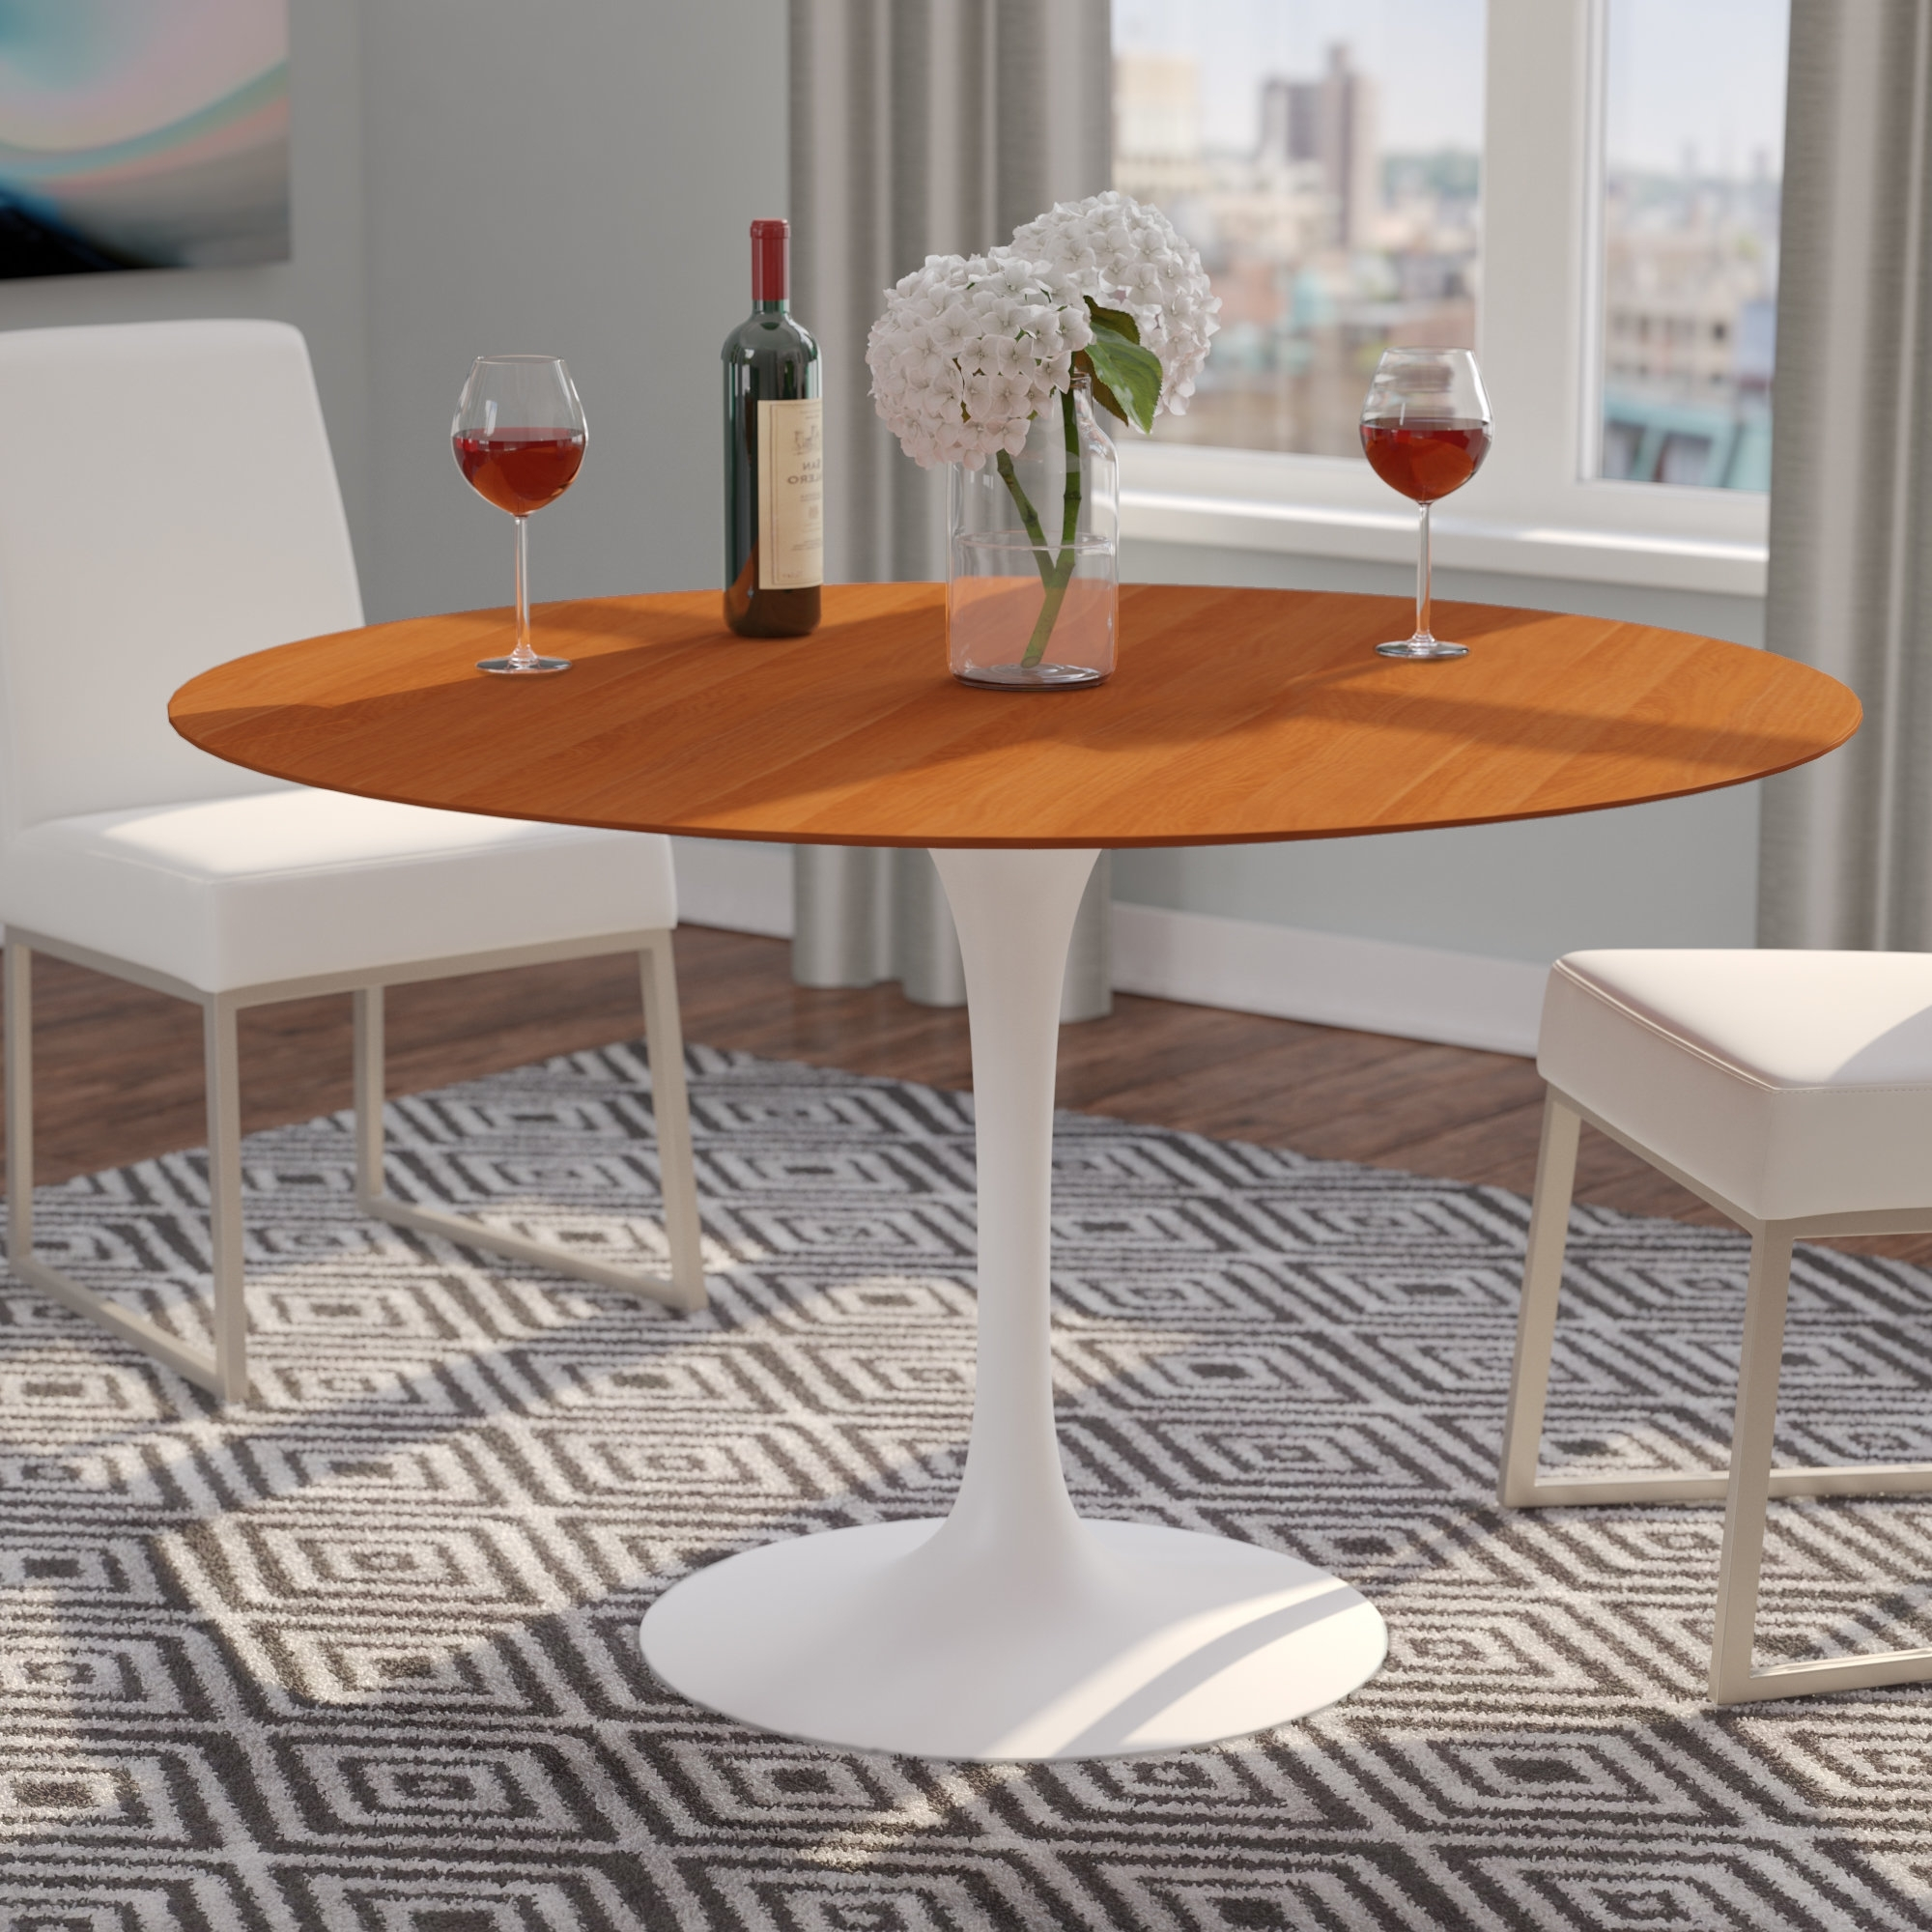 Wayfair Pertaining To Jefferson Extension Round Dining Tables (View 15 of 25)